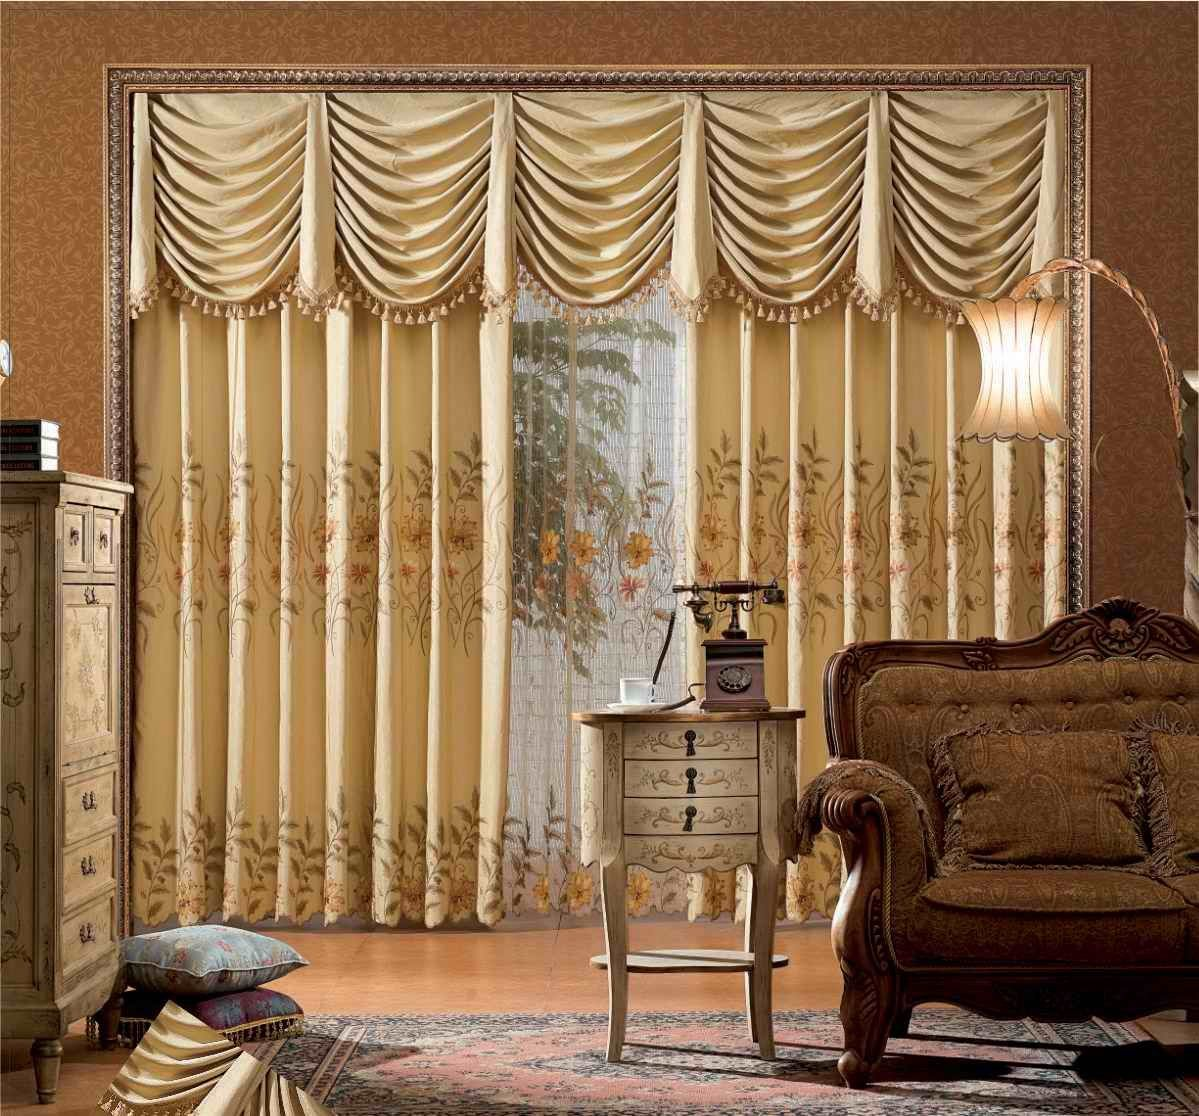 Living Room Curtains Design Delectable Make Modern Living Room Curtains  Httphighlifestylewp Inspiration Design